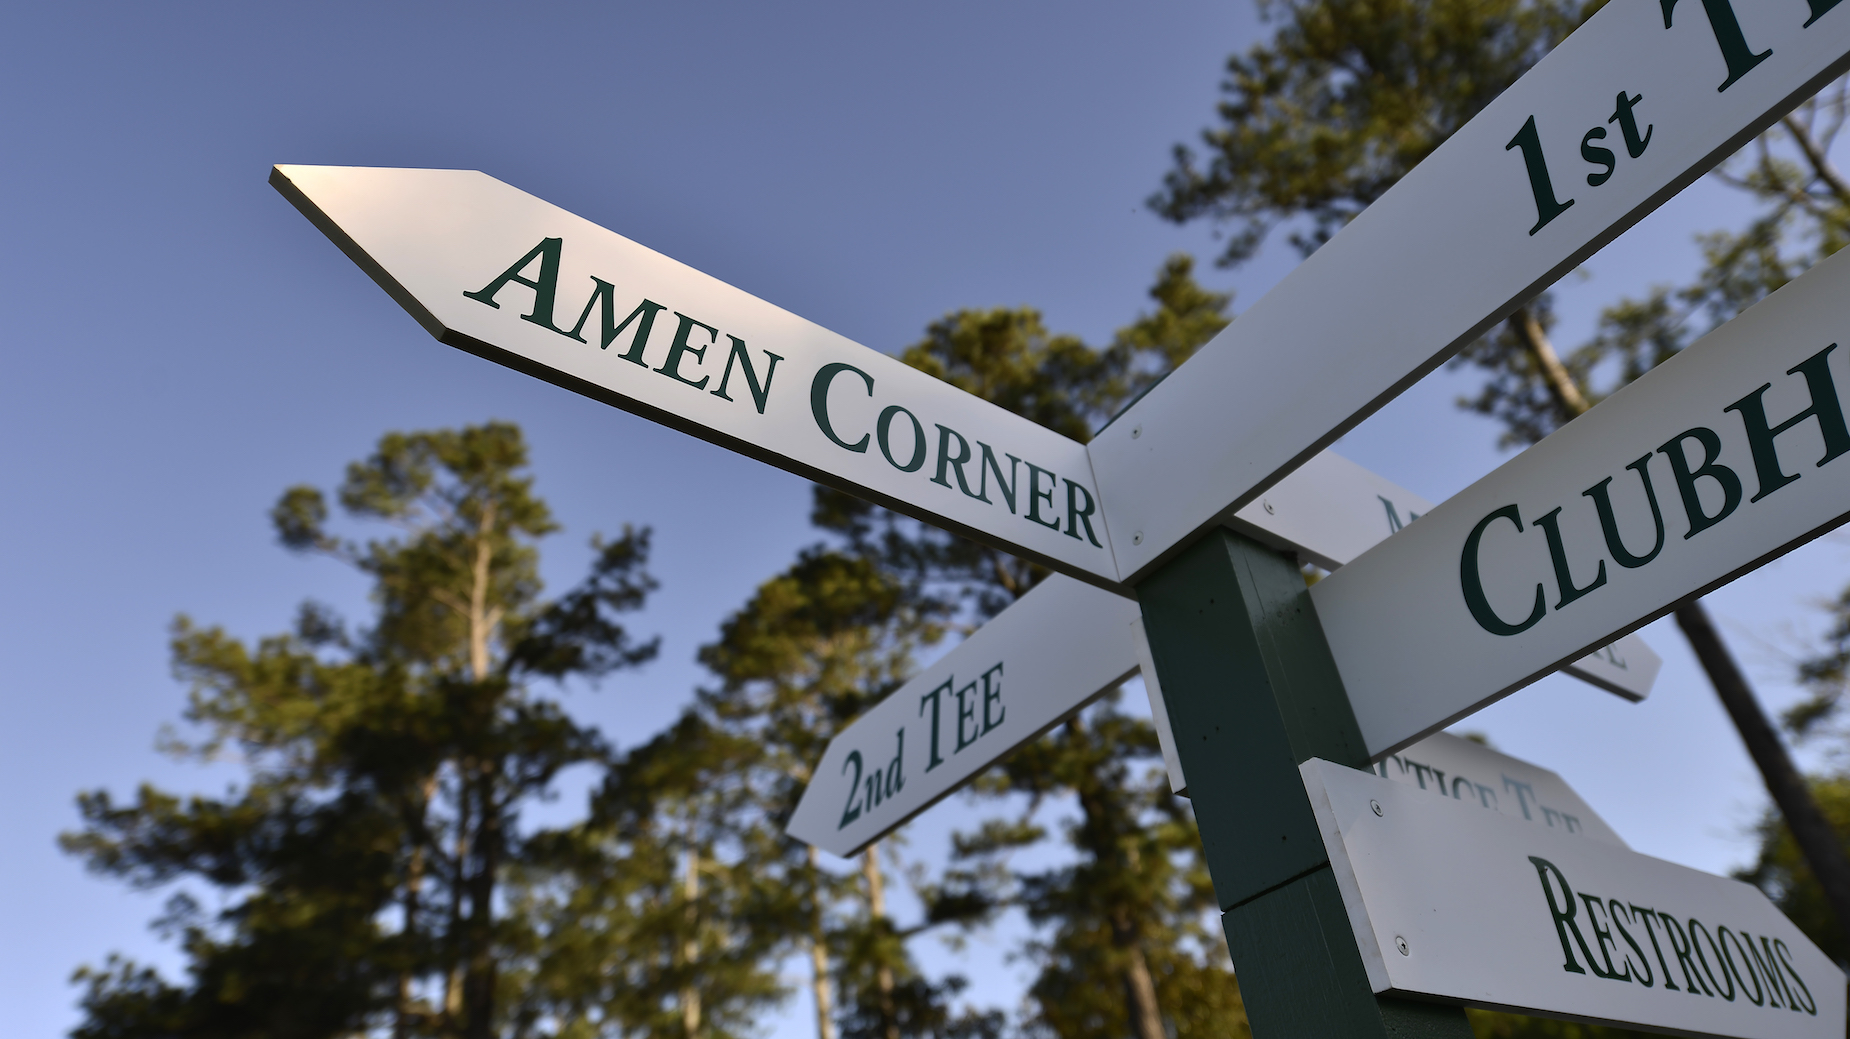 What is Amen Corner at The Masters and how did it get its name?